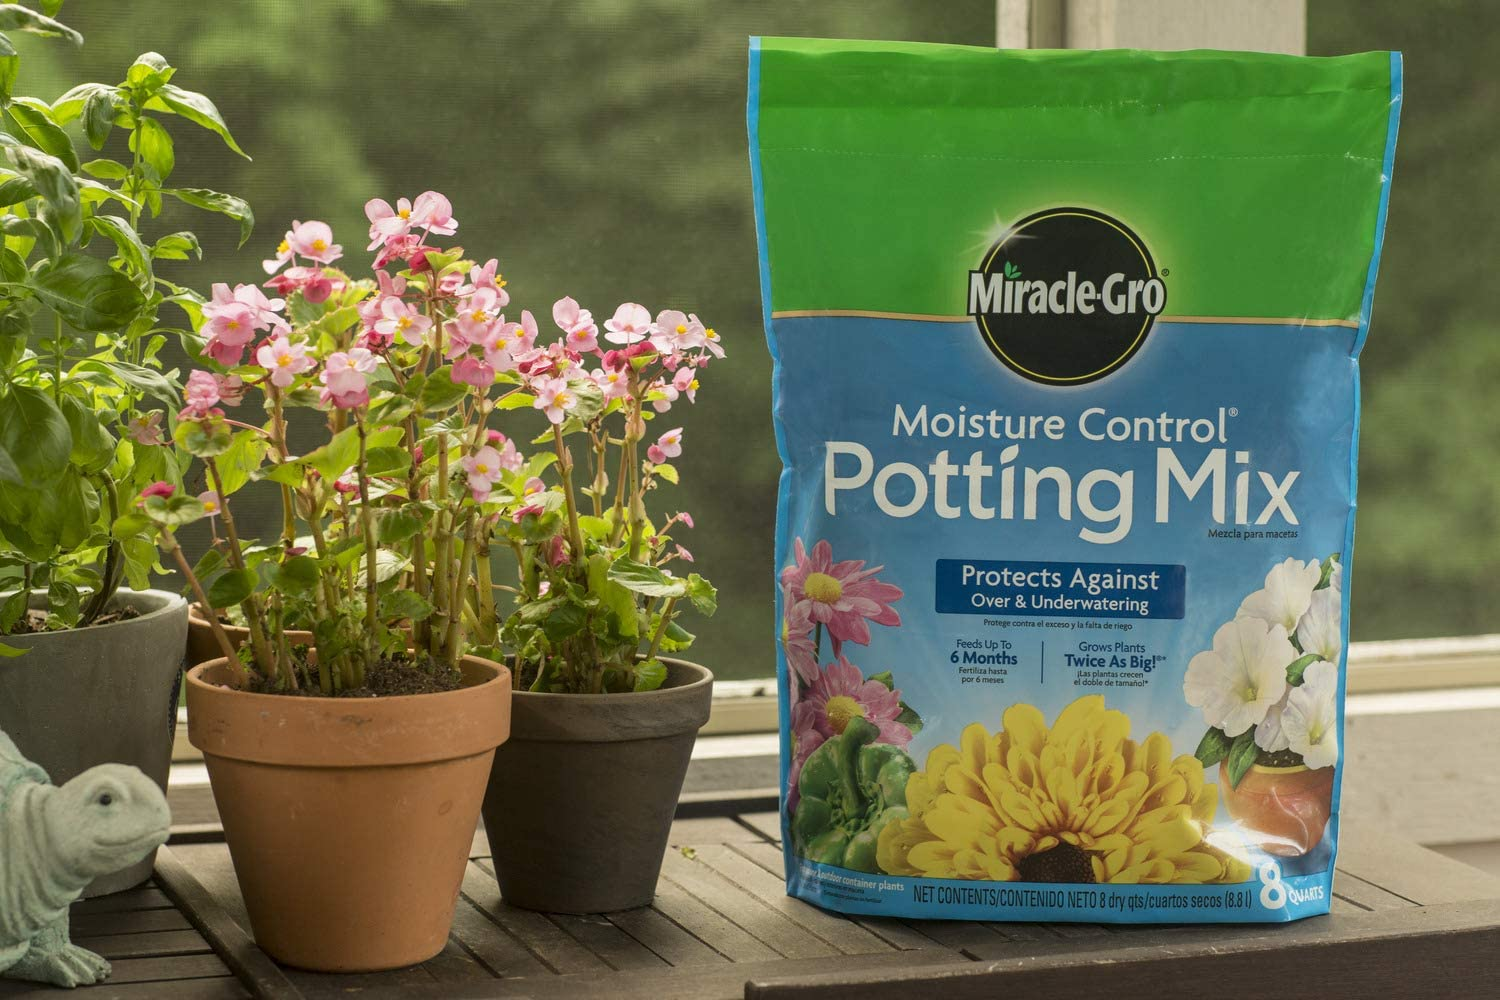 Miracle-Gro Moisture Control Potting Mix 8 qt., Protects Against Over and Under Watering Container Plants, 2 Pack : Garden & Outdoor